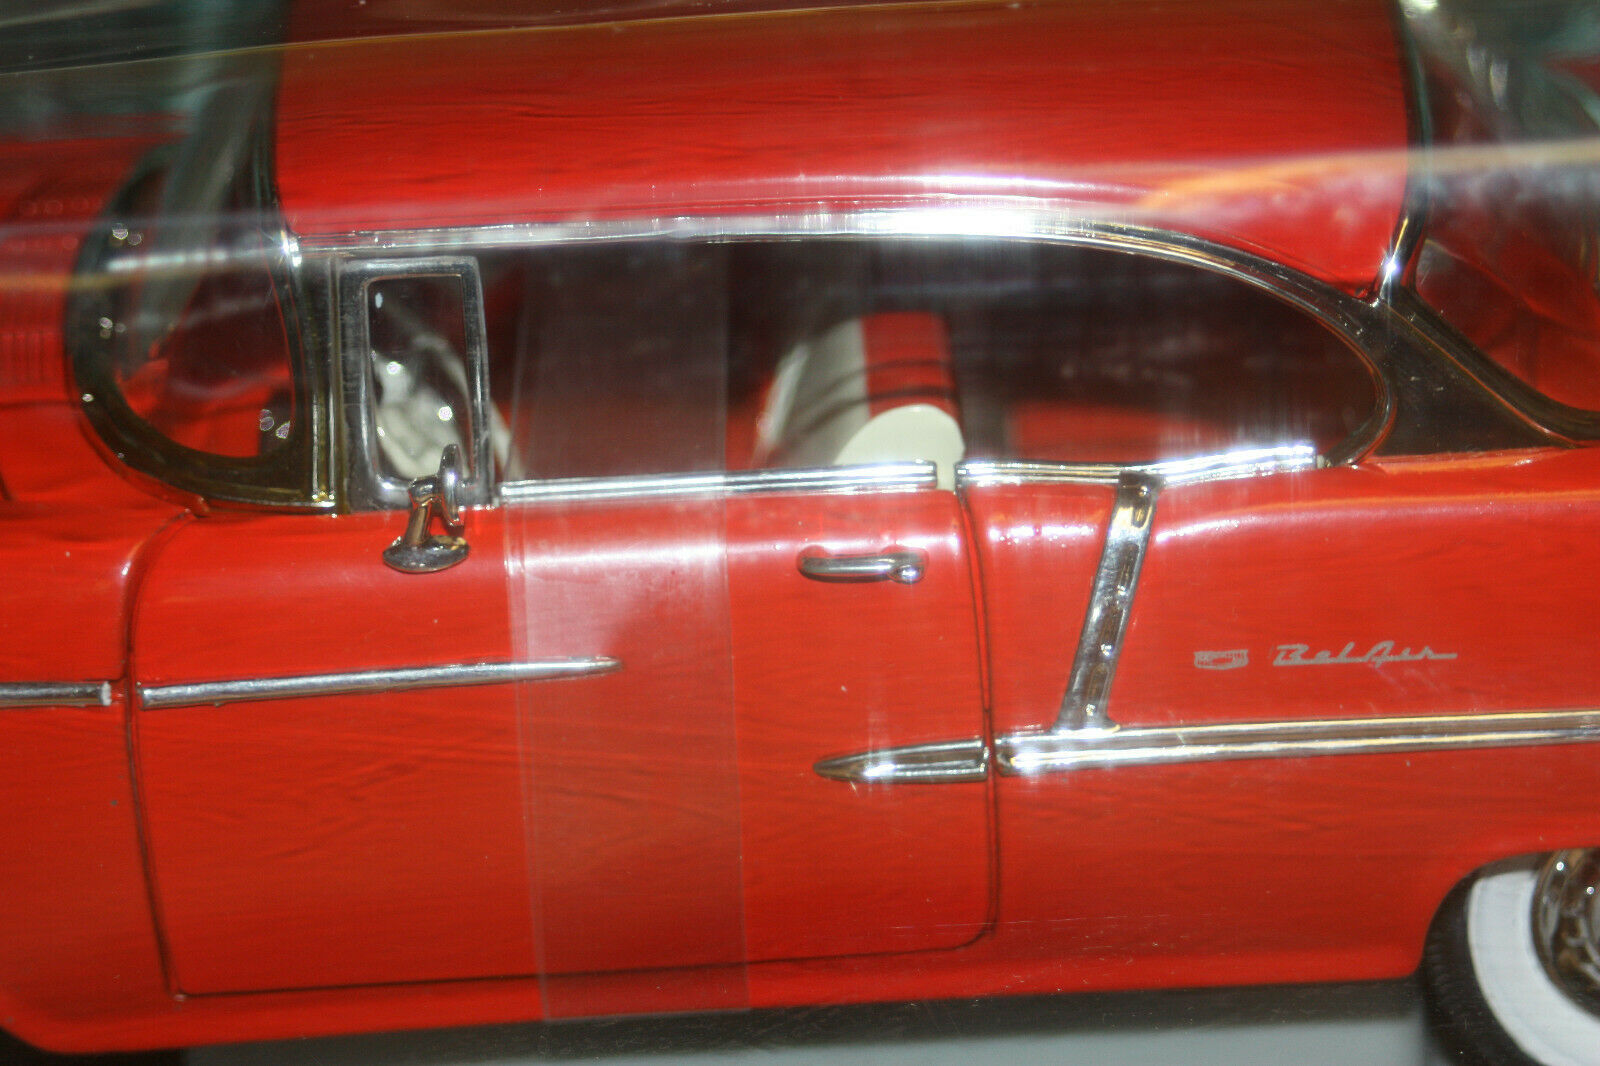 ERTL Collectibles American Muscle Muscle Muscle - 1955 Chevrolet Bel Air - Red - 1 18 Diecast 6b1390